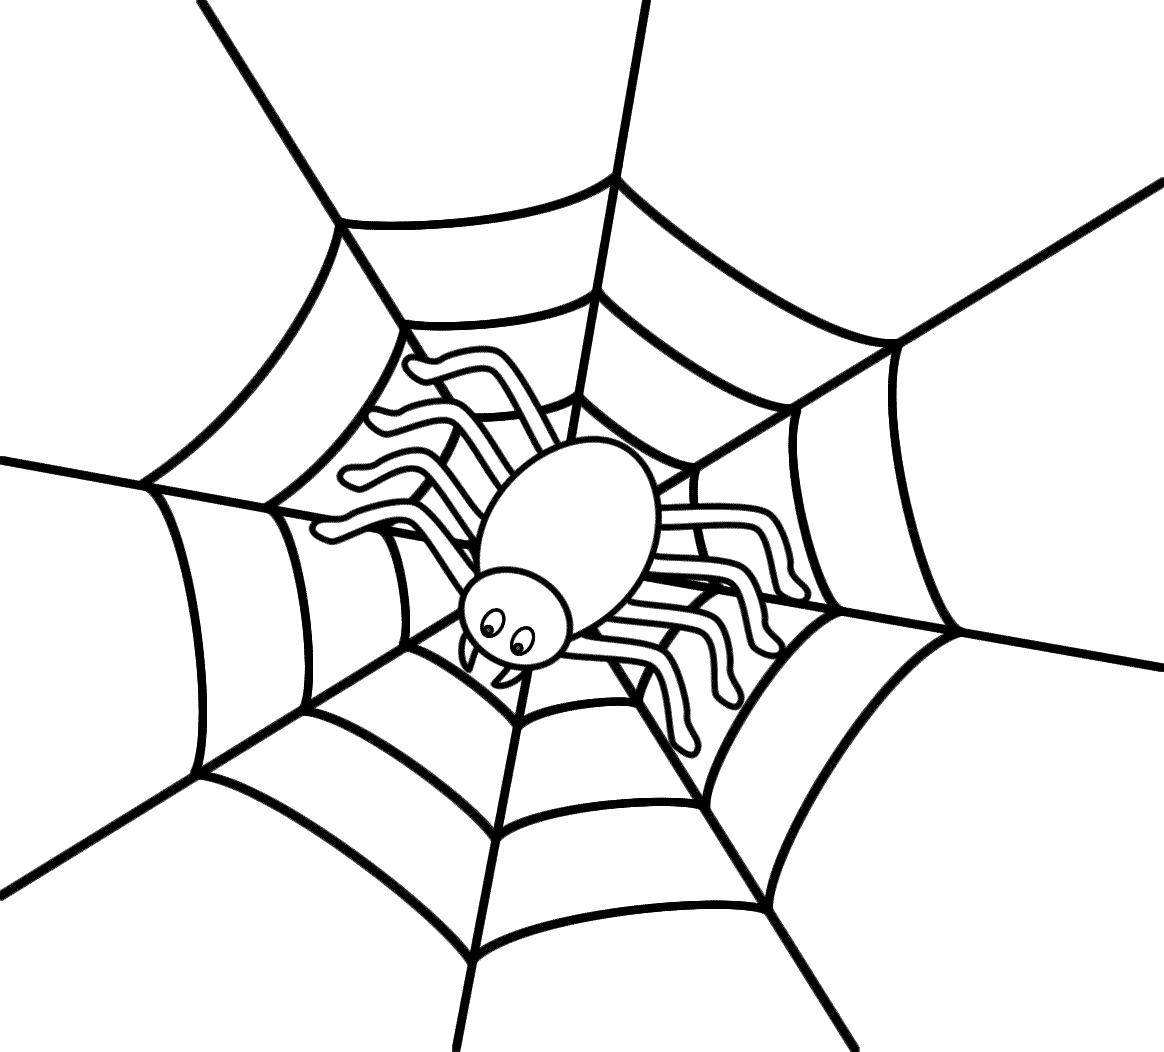 1164x1052 Growth Spider Web Coloring Page Capricus Me